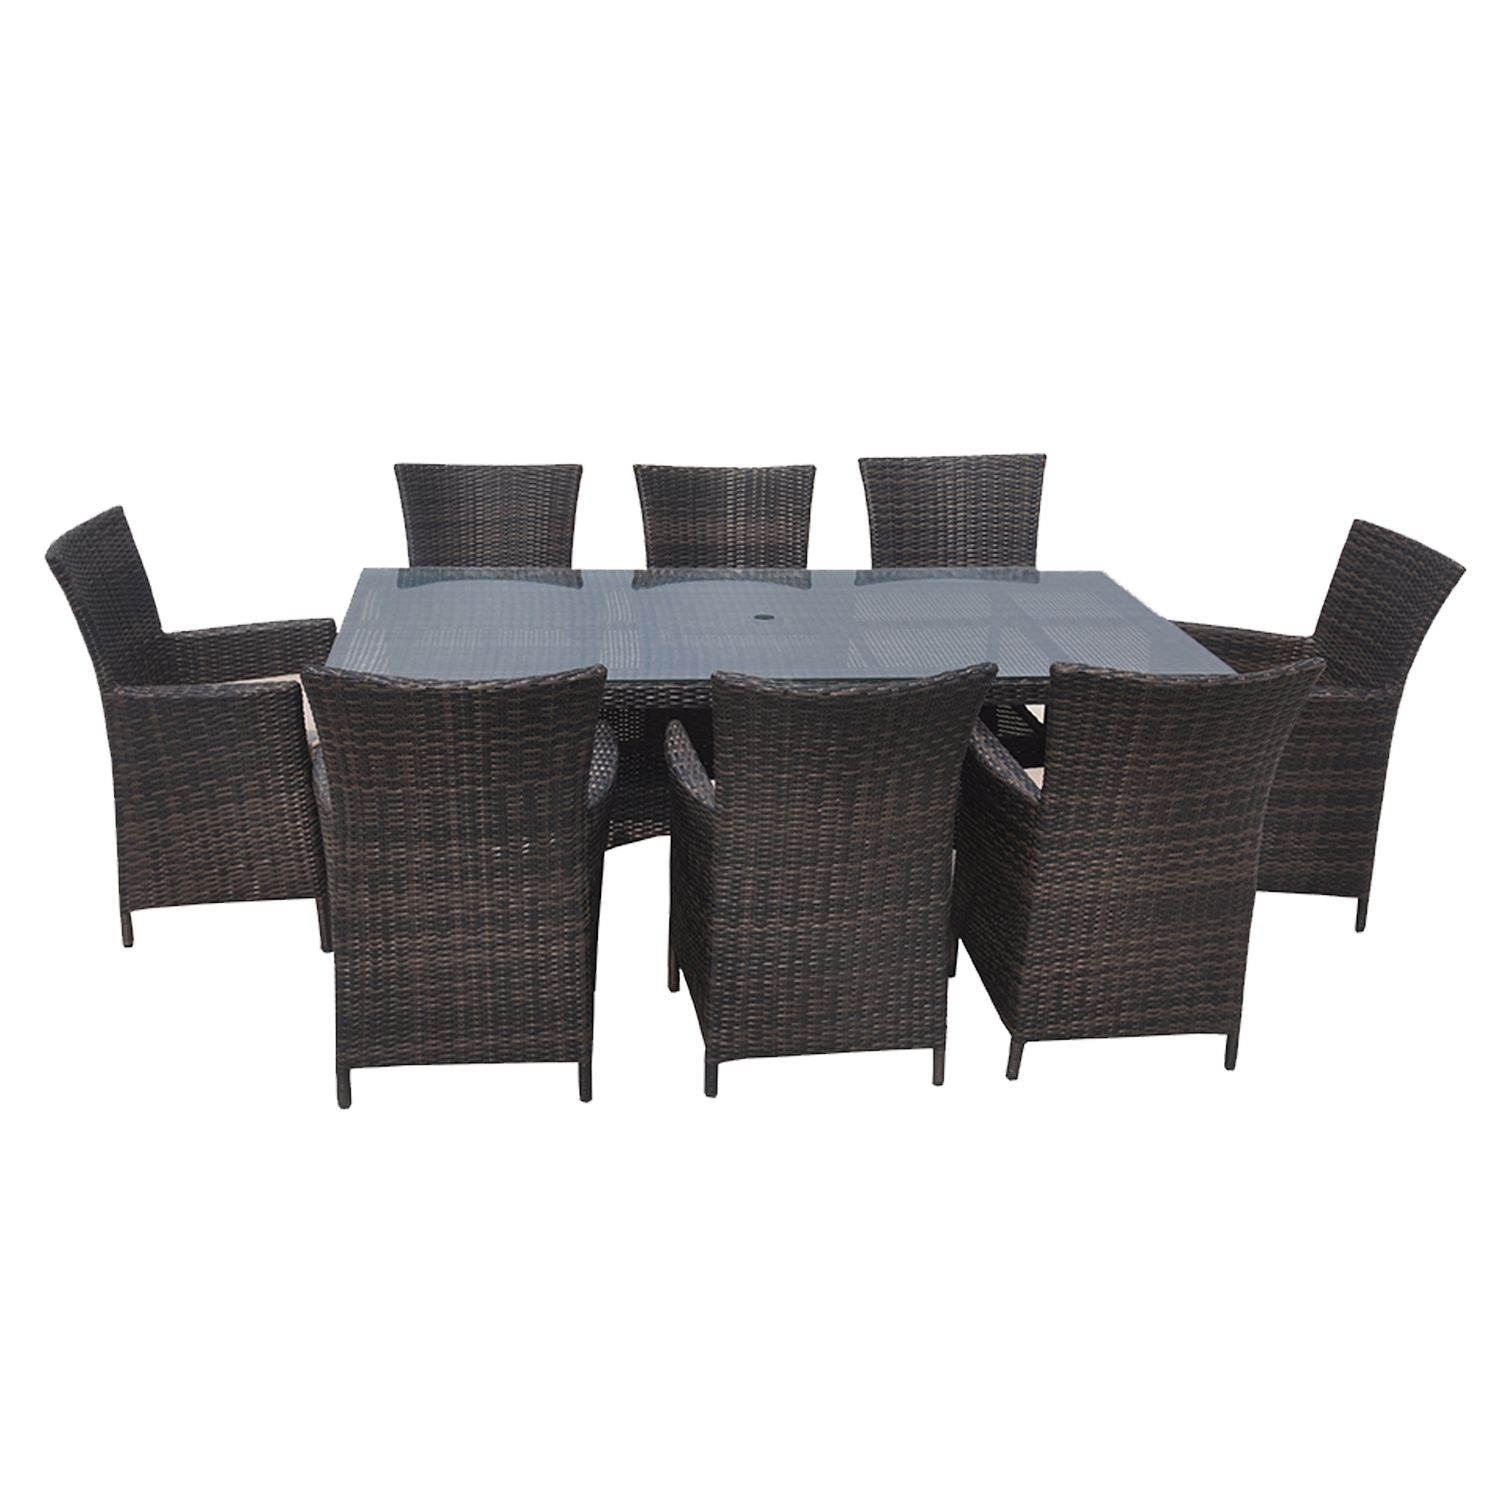 new sunset balangan wicker rattan sofa lounge outdoor 9pc. Black Bedroom Furniture Sets. Home Design Ideas